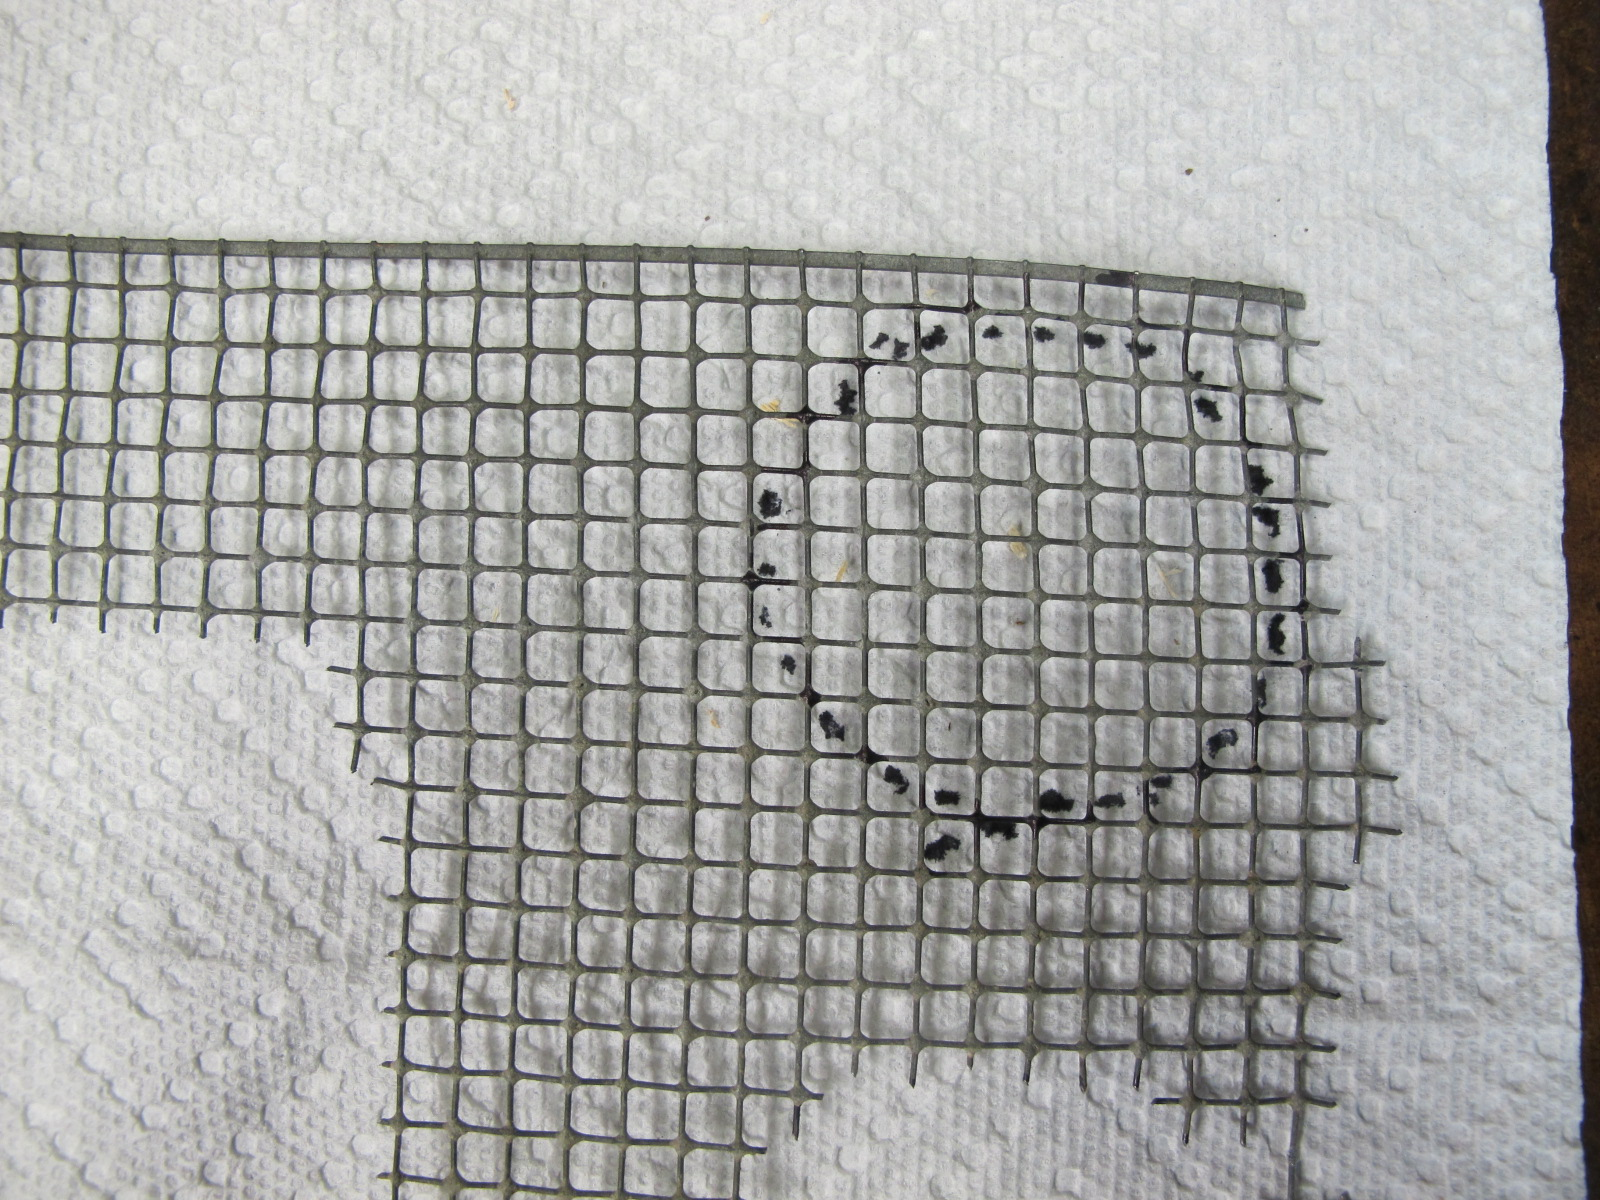 Cut out patter on wire mesh.